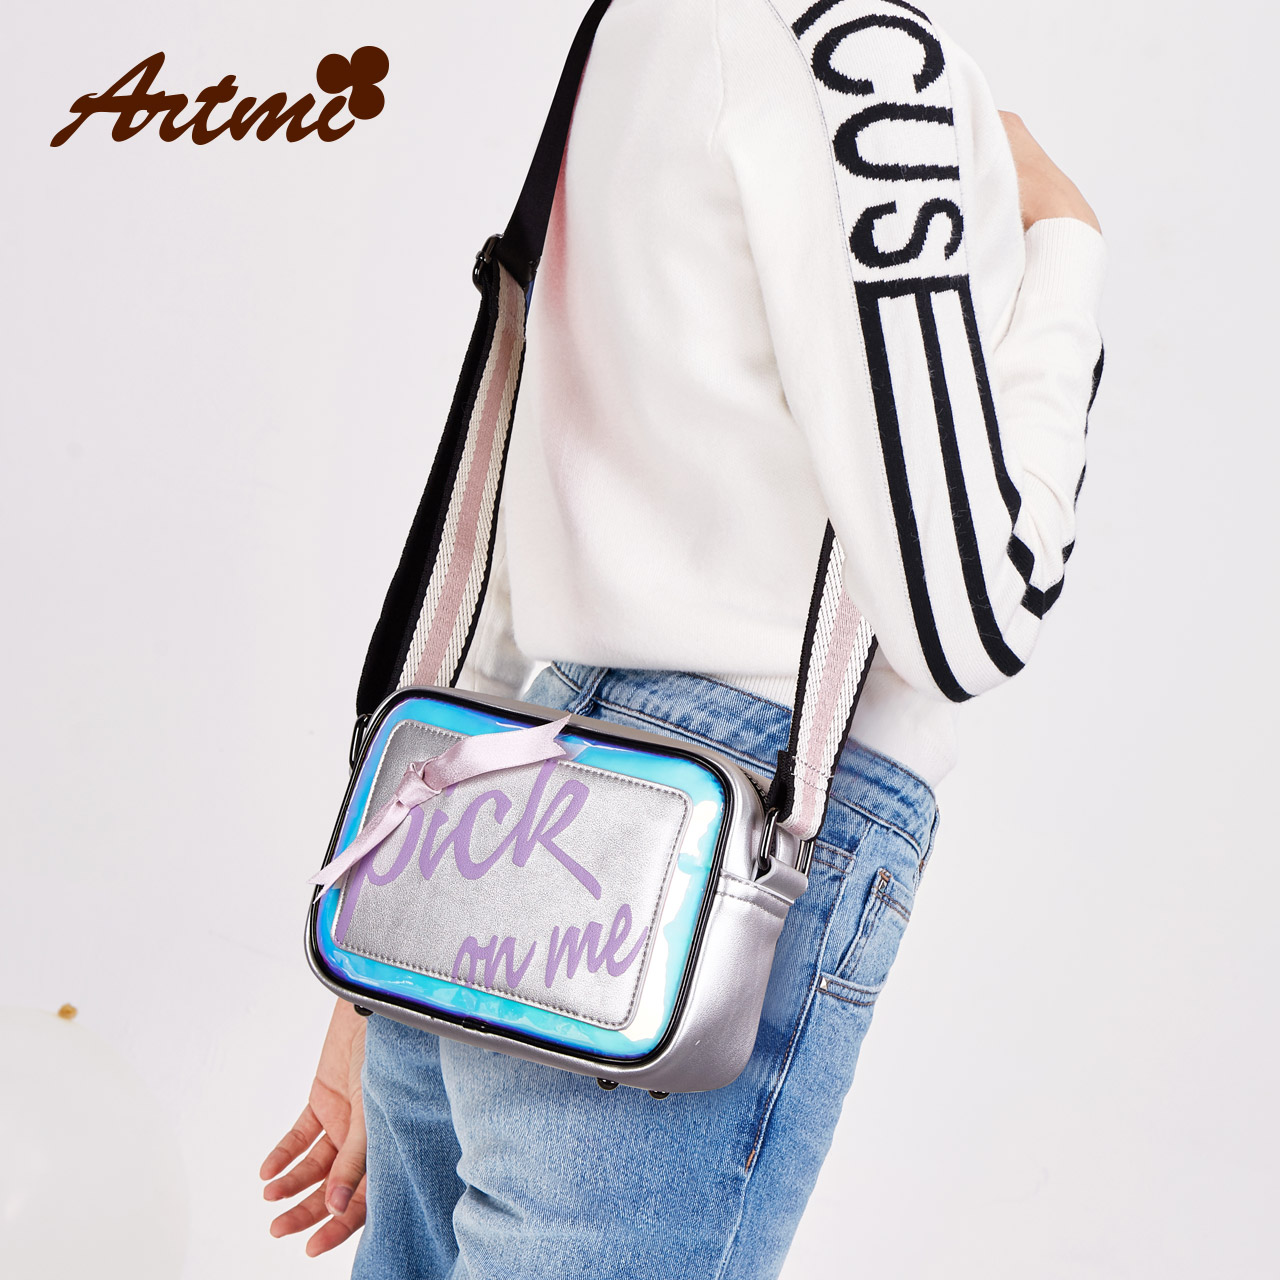 Artmi Atmi small square bag female Messenger bag 2018 new casual personality bag female wide shoulder strap diagonal cross bag